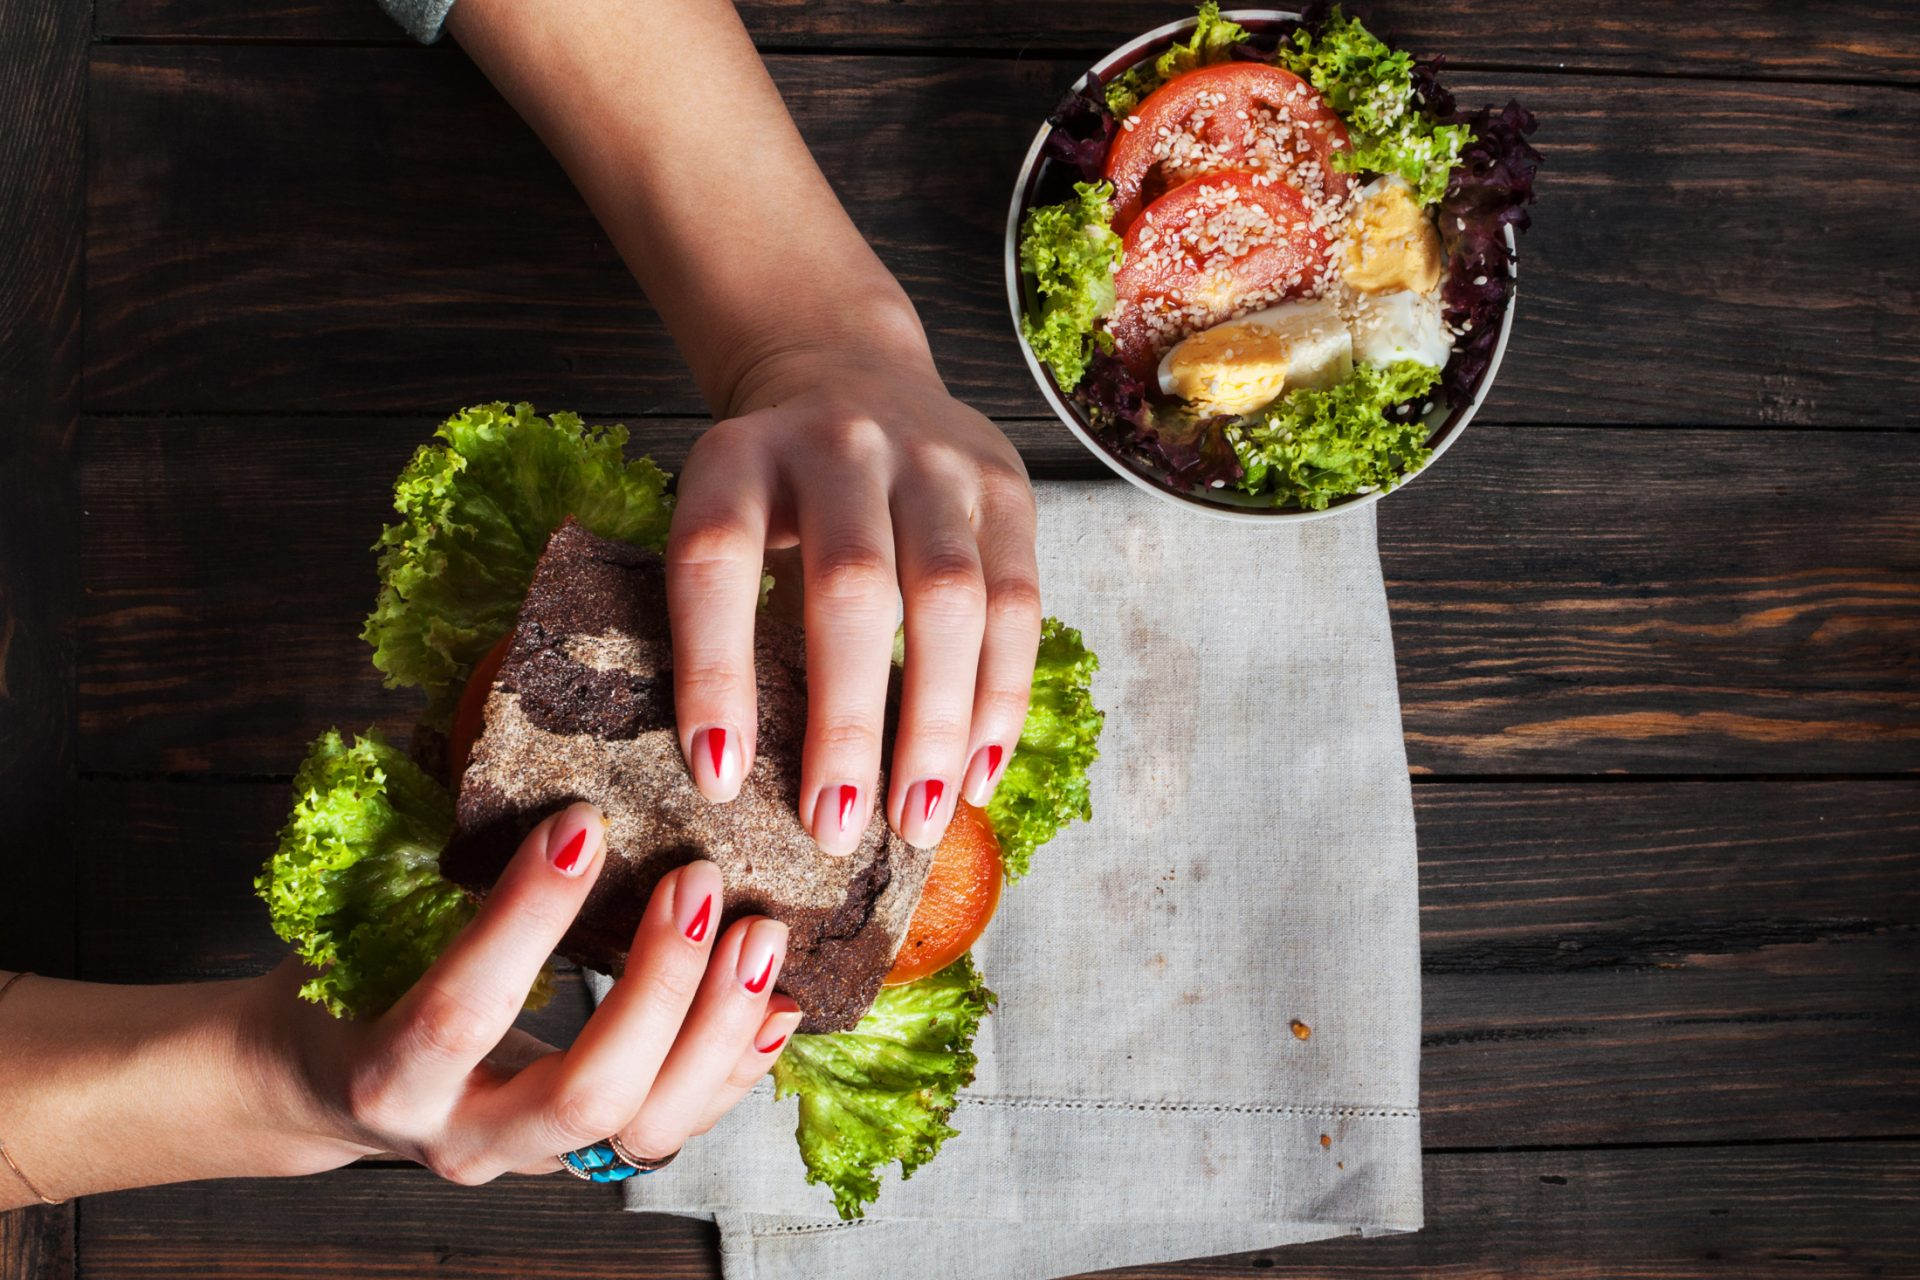 Woman eating tasty and healthy sandwich in hands